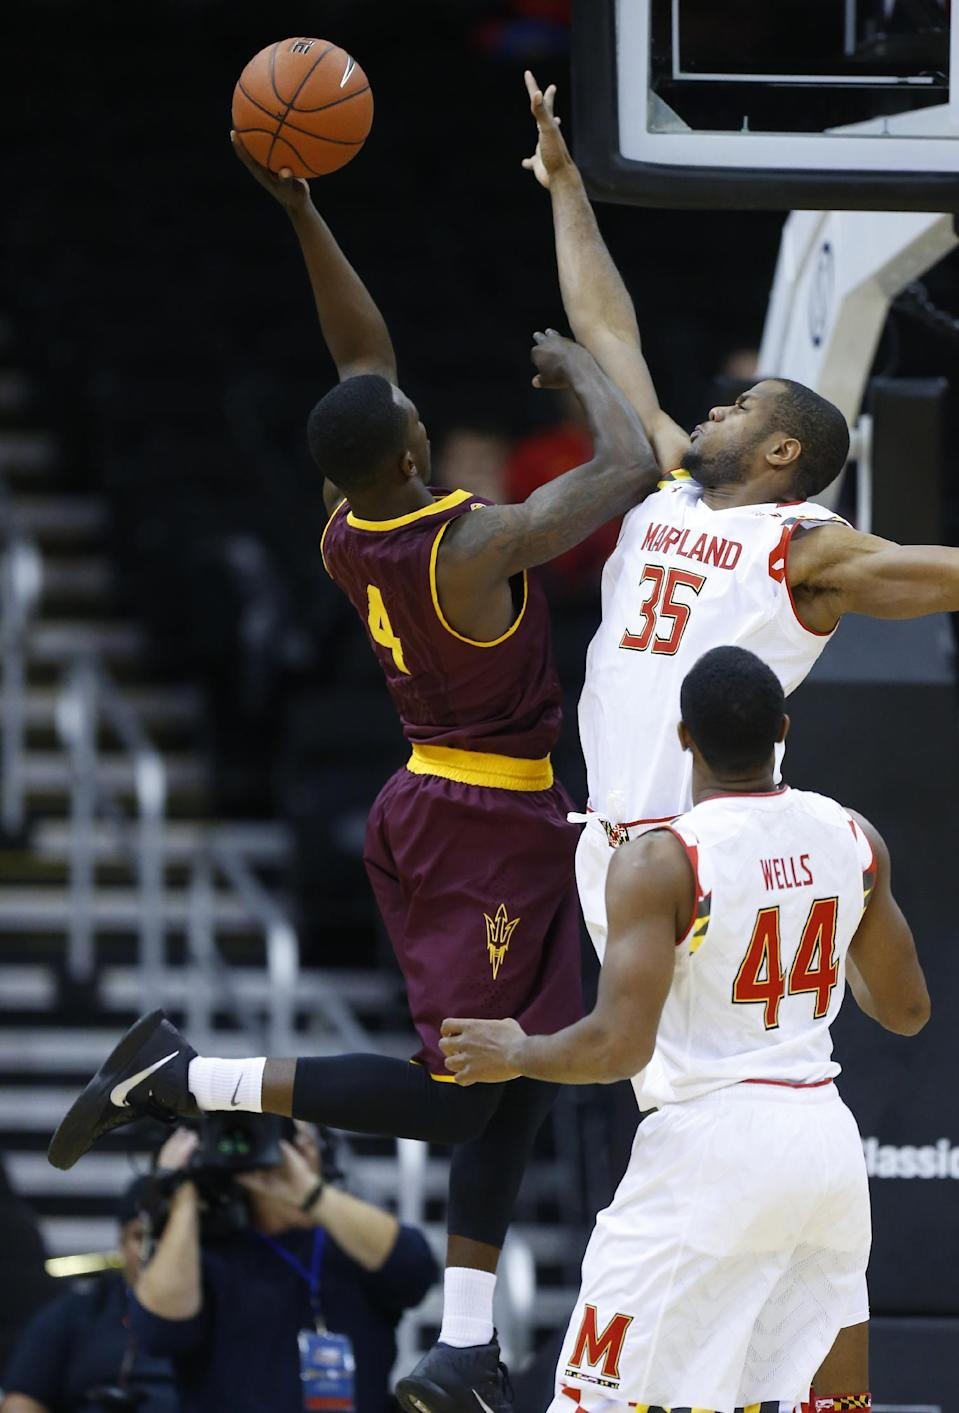 Arizona State guard Gerry Blakes (4) takes a shot over Maryland forward Damonte Dodd (35) as Dez Wells (44) looks on in the first half of the CBE Hall of Fame Classic college baseball game Monday, Nov. 24, 2014, in Kansas City, Mo. (AP Photo/Ed Zurga)